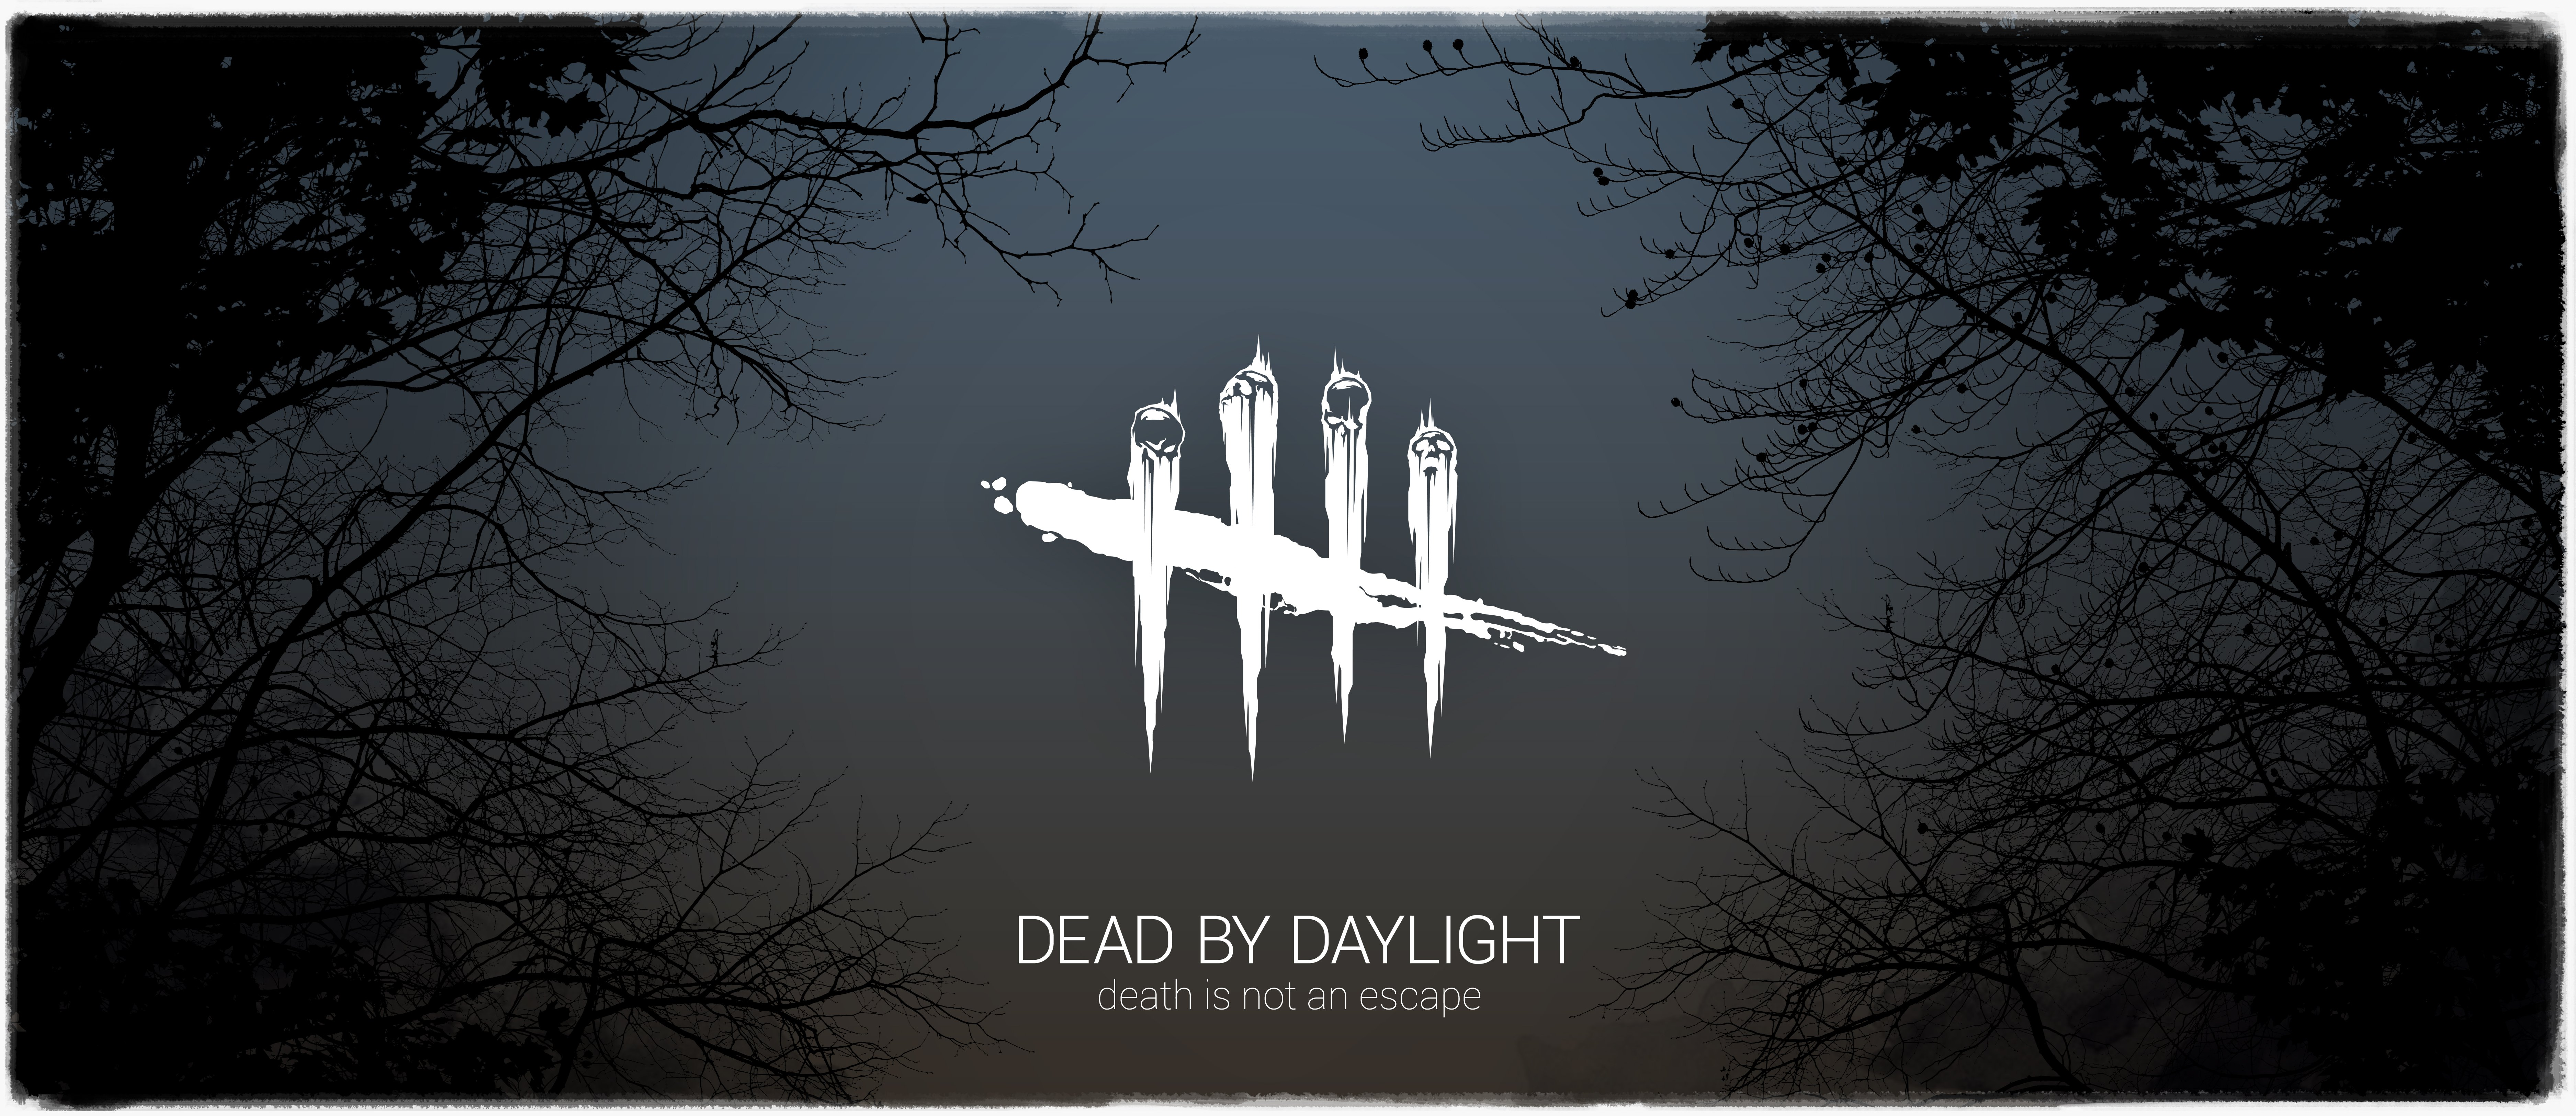 New Asymmetrical Horror Game Dead By Daylight Announced